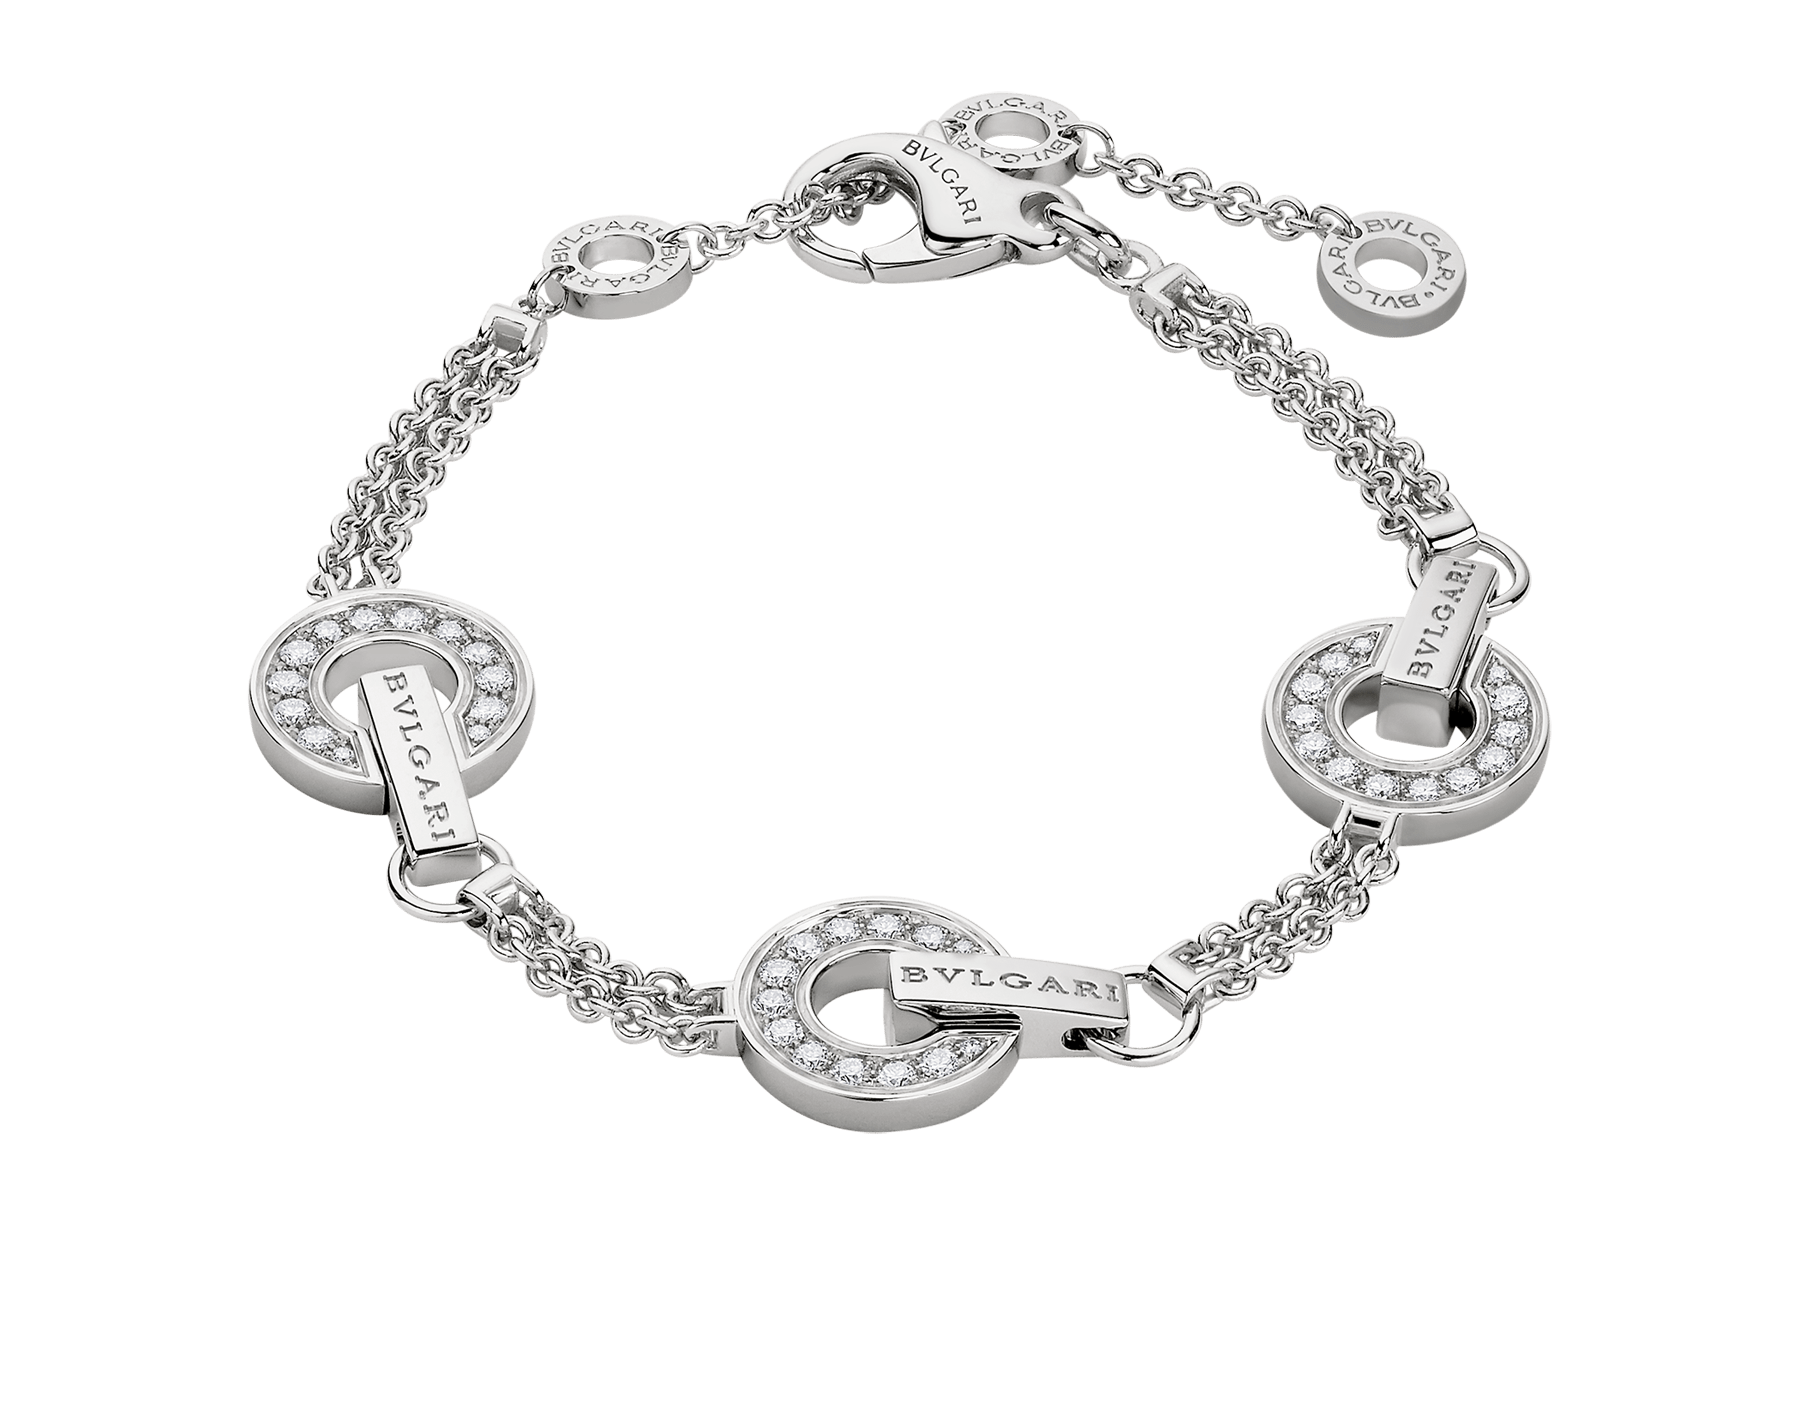 BVLGARI BVLGARI Openwork 18 kt white gold necklace set with full pavé diamonds on the circular elements BR859065 image 1